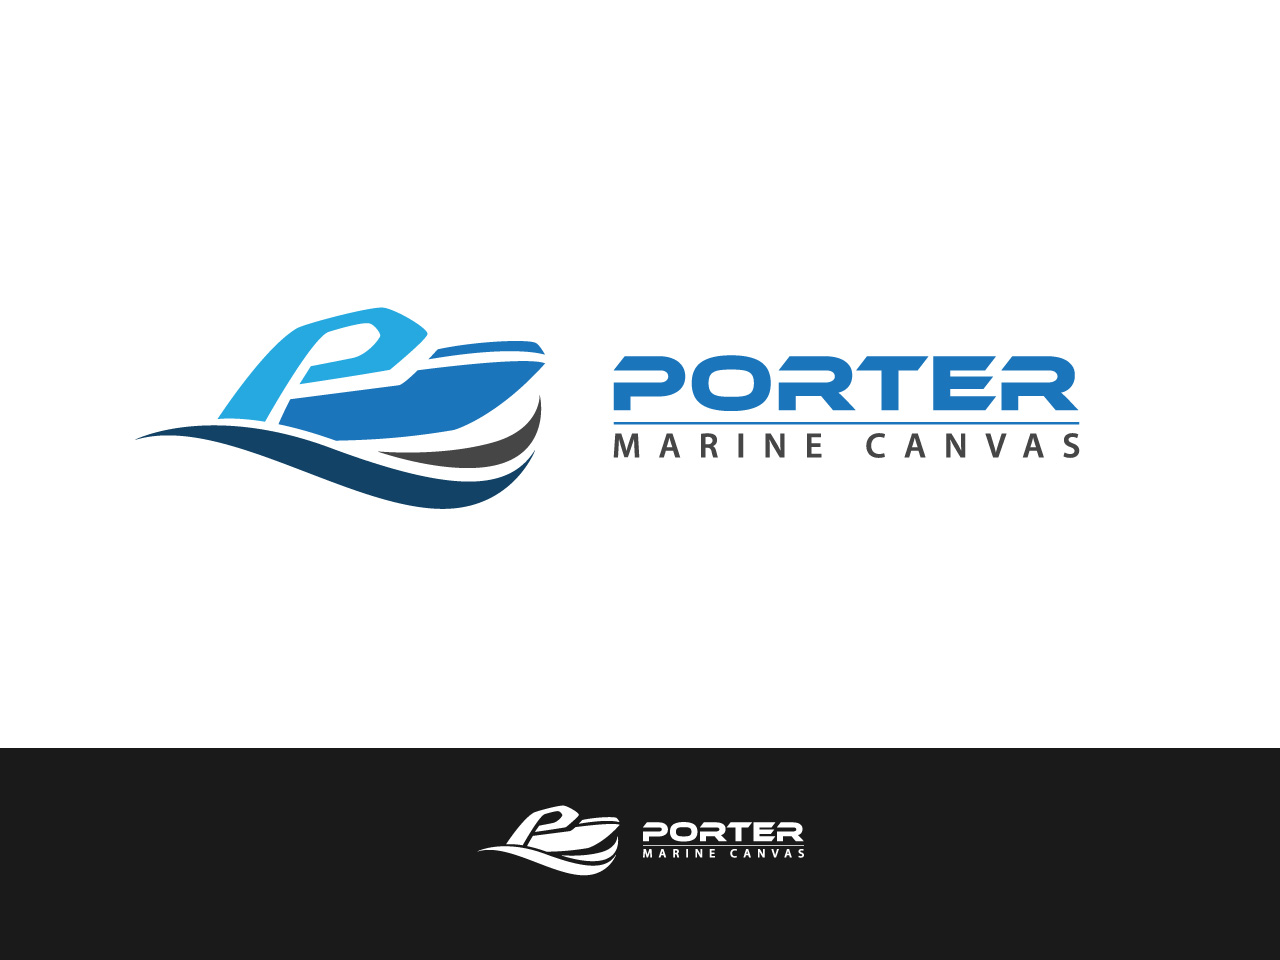 Logo Design by jpbituin - Entry No. 99 in the Logo Design Contest Imaginative Logo Design for Porter Marine Canvas.